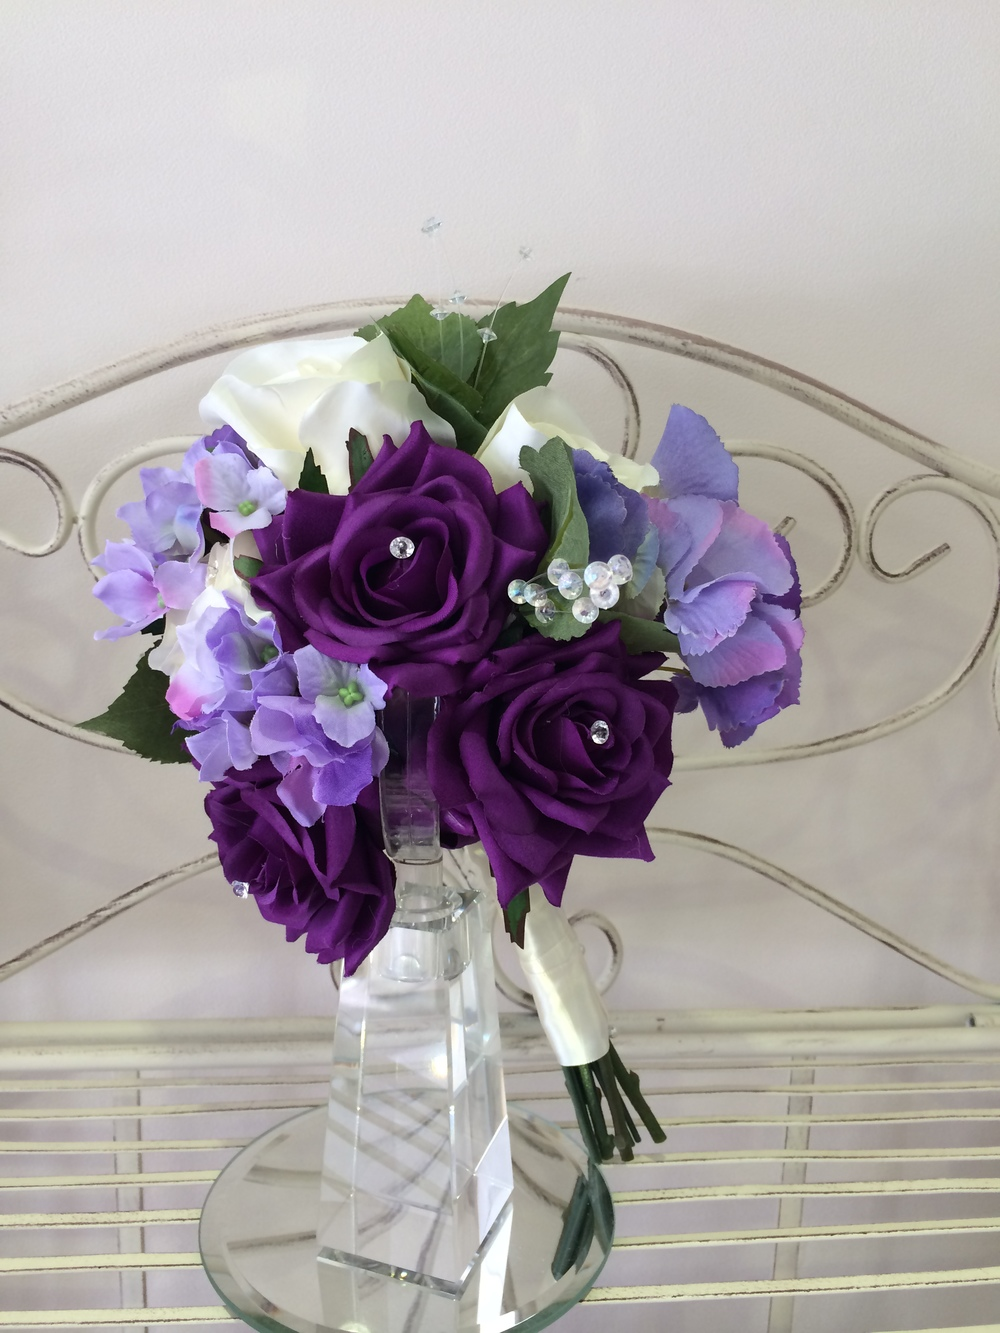 Bridesmaids Bouquet With Cadbury Purple & Cream Roses & Lilac Hydrangeas